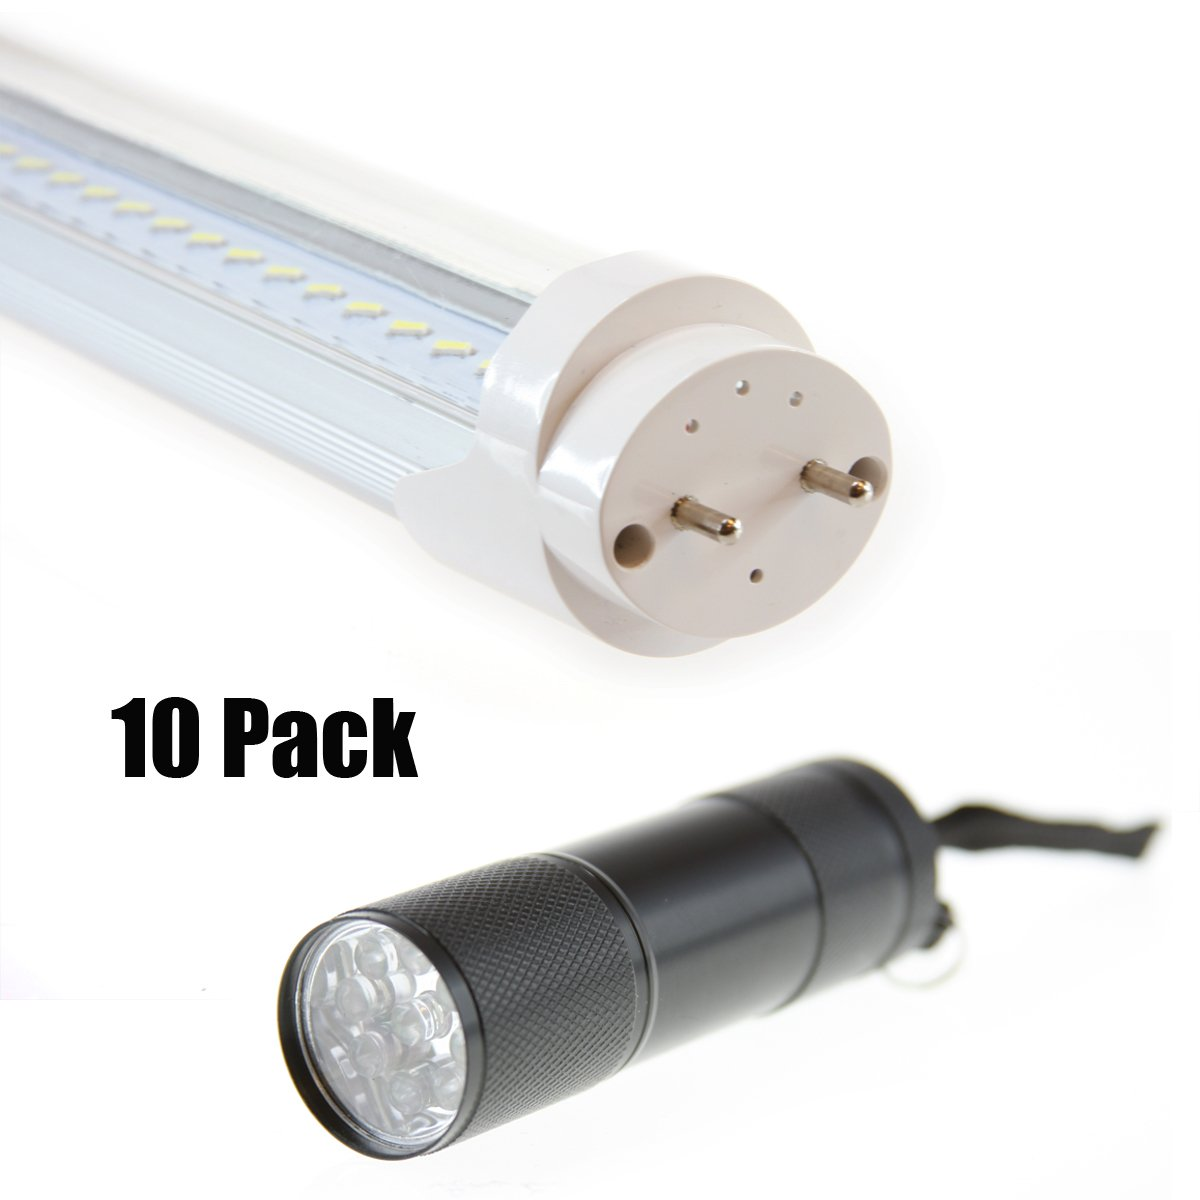 5Star Lights T8 LED Light Tube 20W(60W equivalent), 6000K Daylight, ETL Listed with LED flashlight, Dual-ended Power, 4ft. 2300 Lumen Energy Saving Fluorescent Tube Replacement, (Pack of 10, Daylight White)